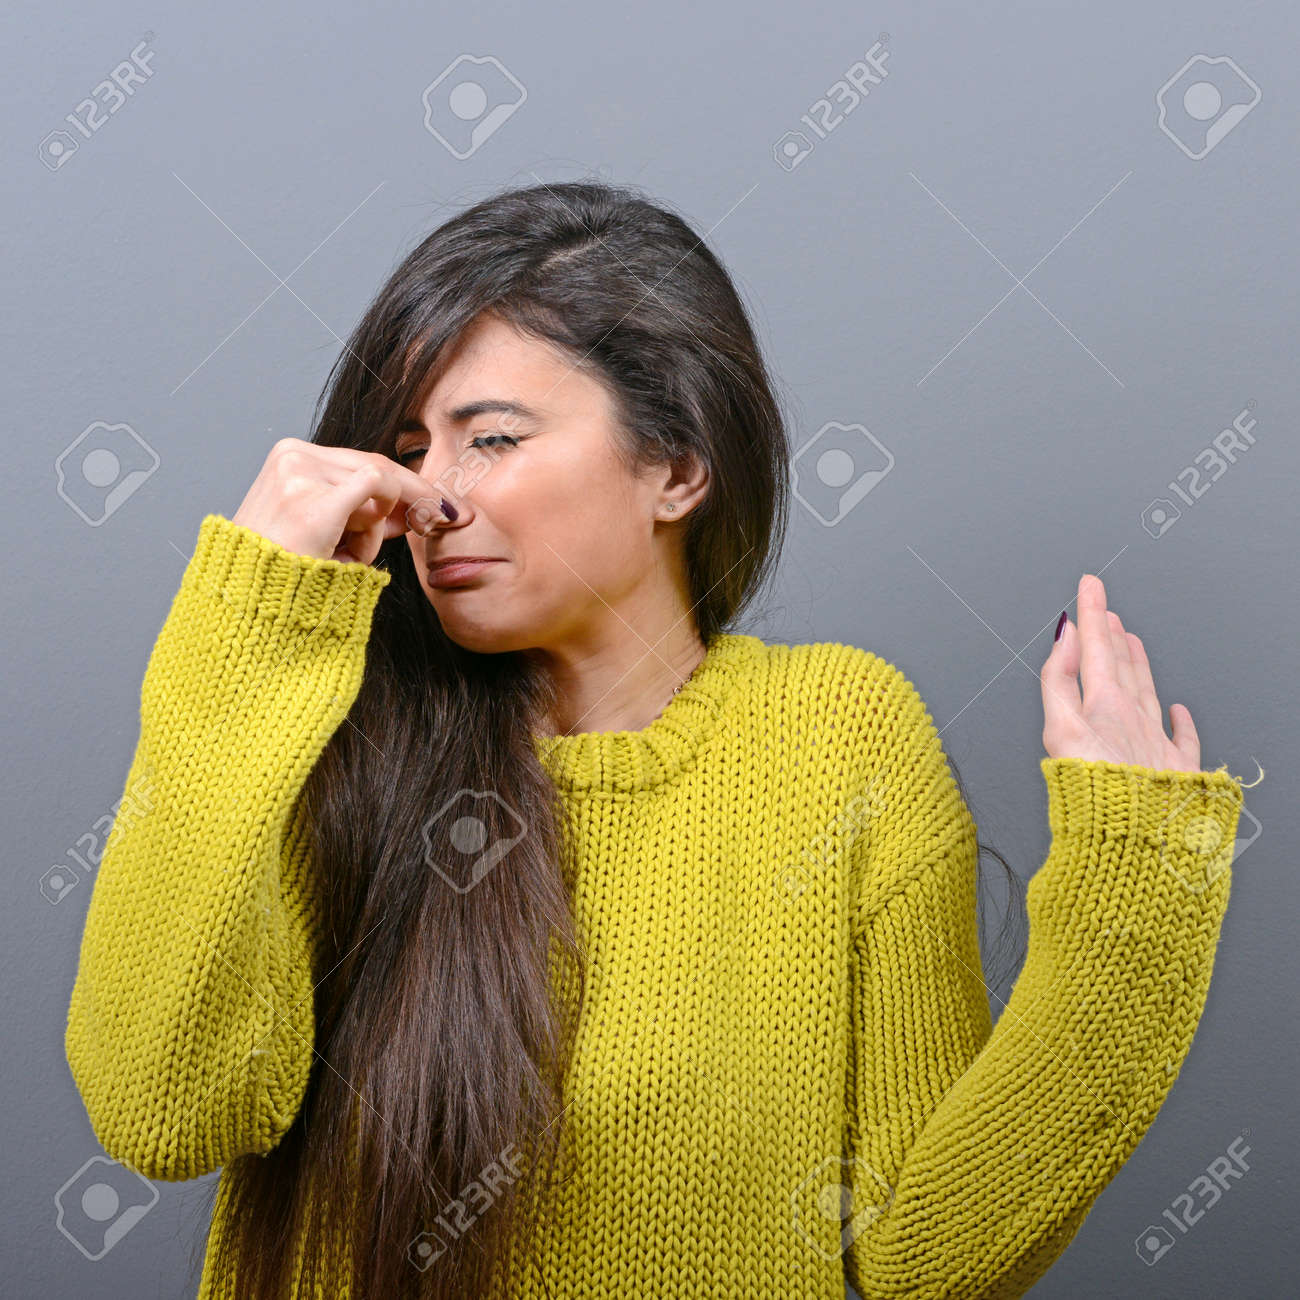 Portrait of woman covering nose with hand showing that something stinks against gray background - 53915052